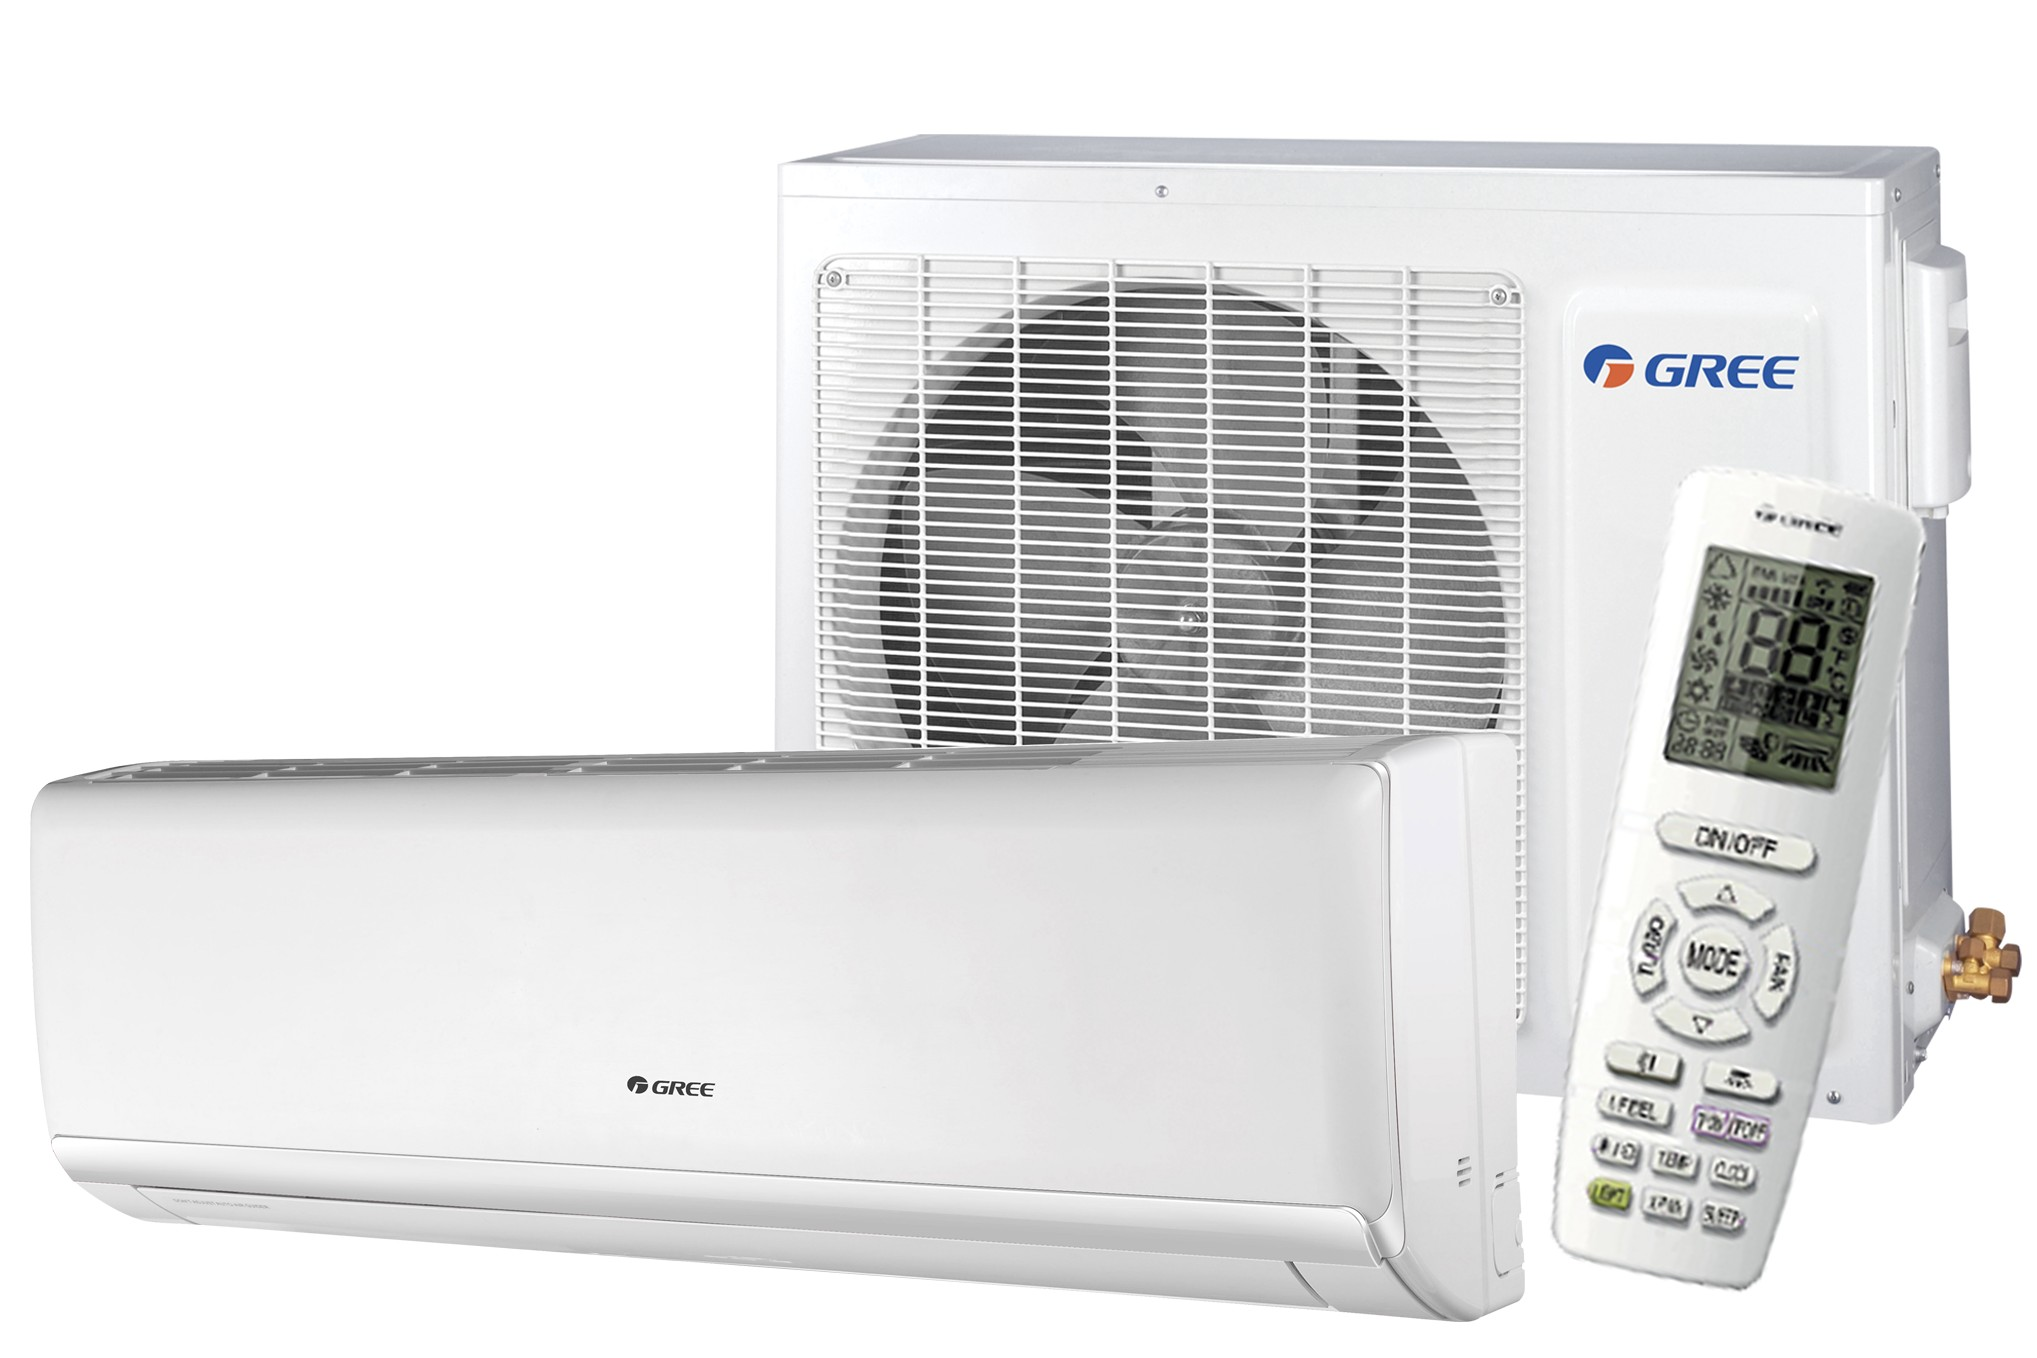 Wall Mounted Air Conditioning Units Montreal - Wall Design Ideas